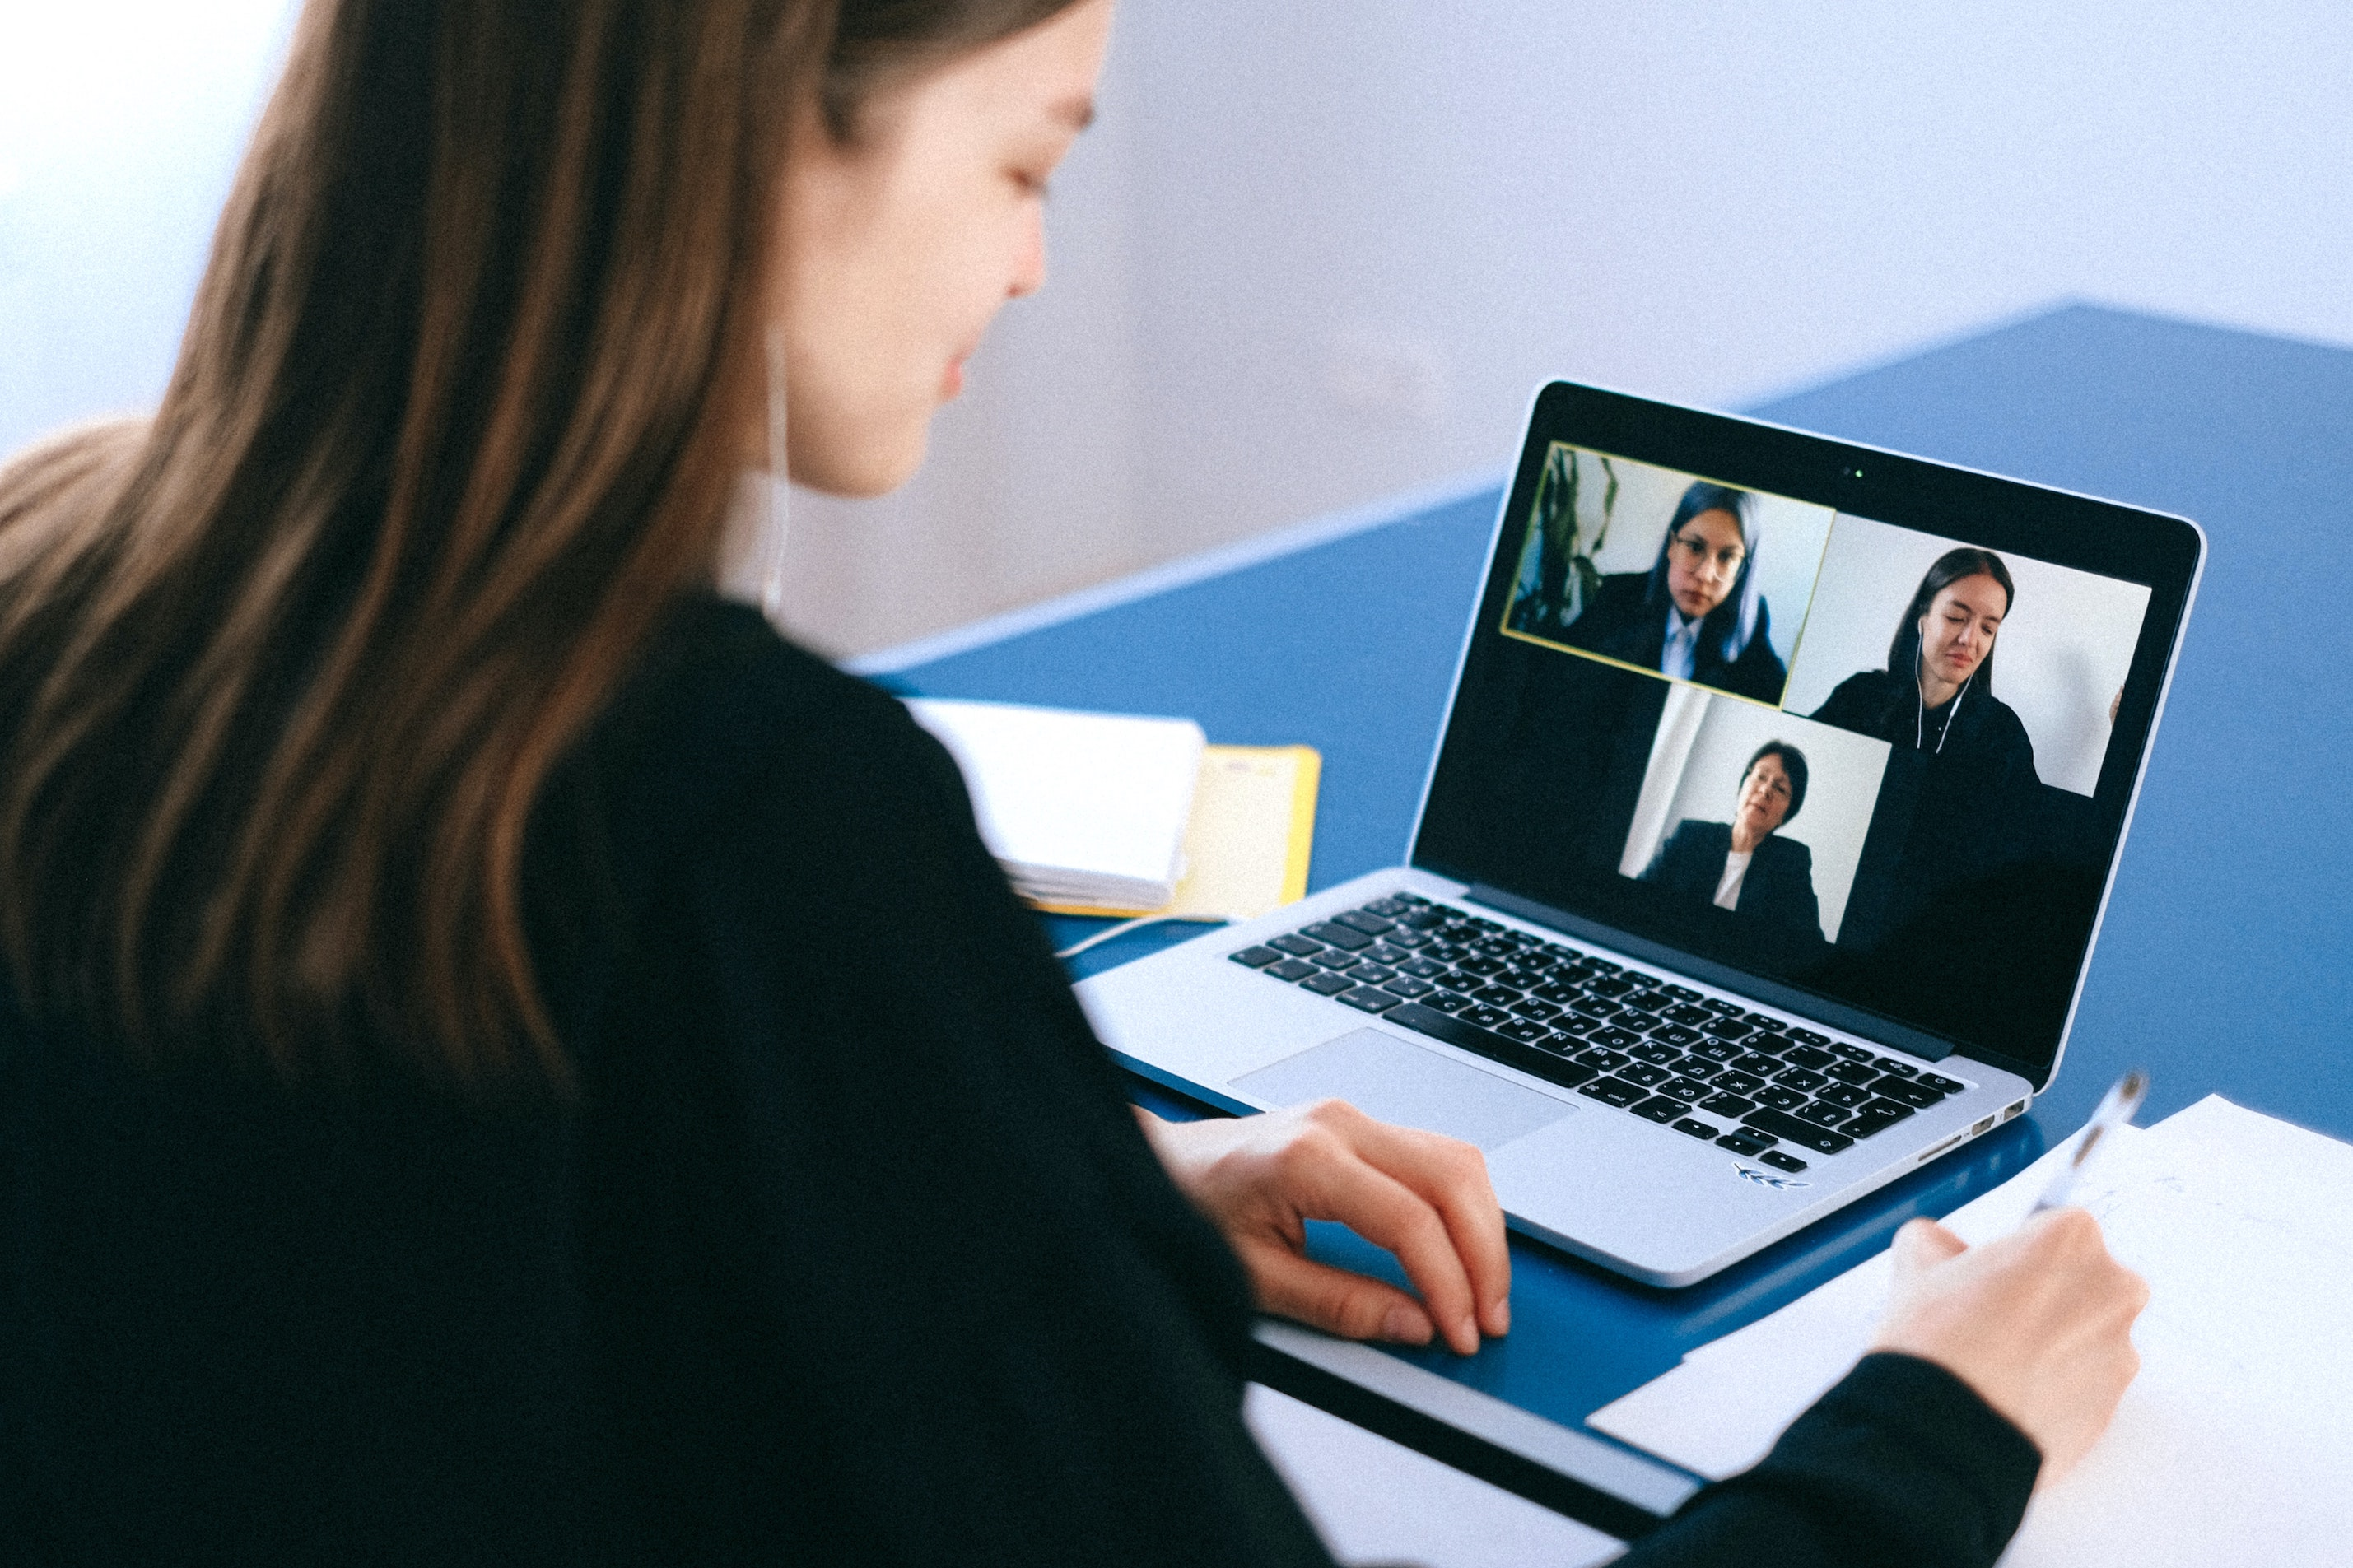 With the coronavirus impacting face-to-face meetings, video interviews have been on the rise. But what is a one-way interview? In this article, we take a look at why this particular form of video interview has cropped up. We highlight the benefits and pitfalls for the interviewer and the interviewee. And we also cover top tips for a one-way video job interview.